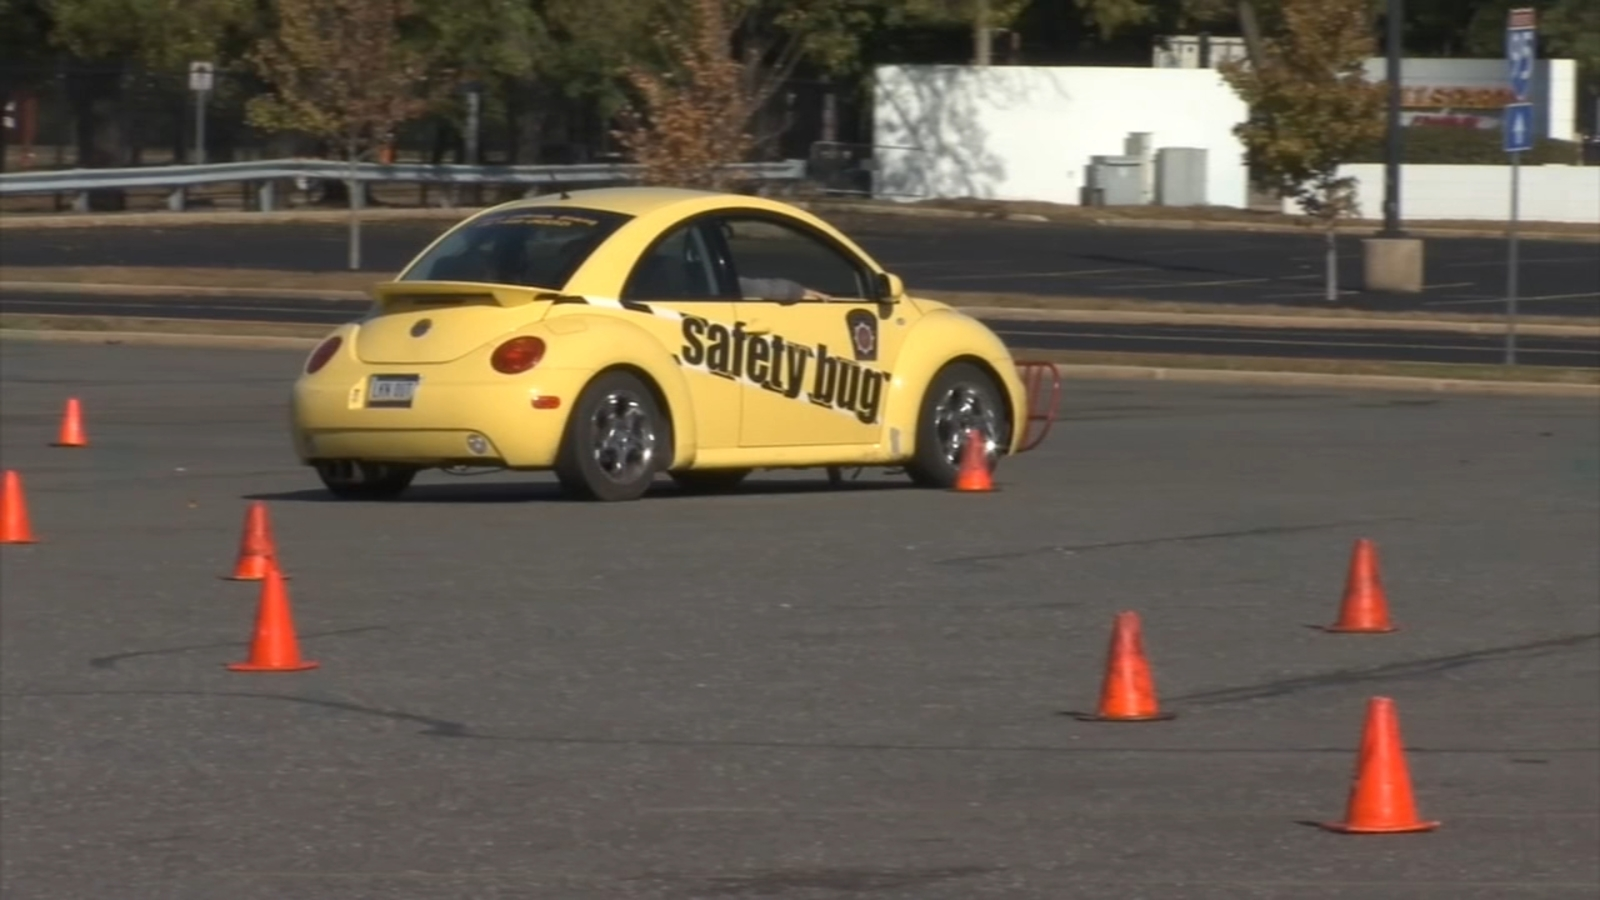 Sixers take part in National Teen Driver Safety Week